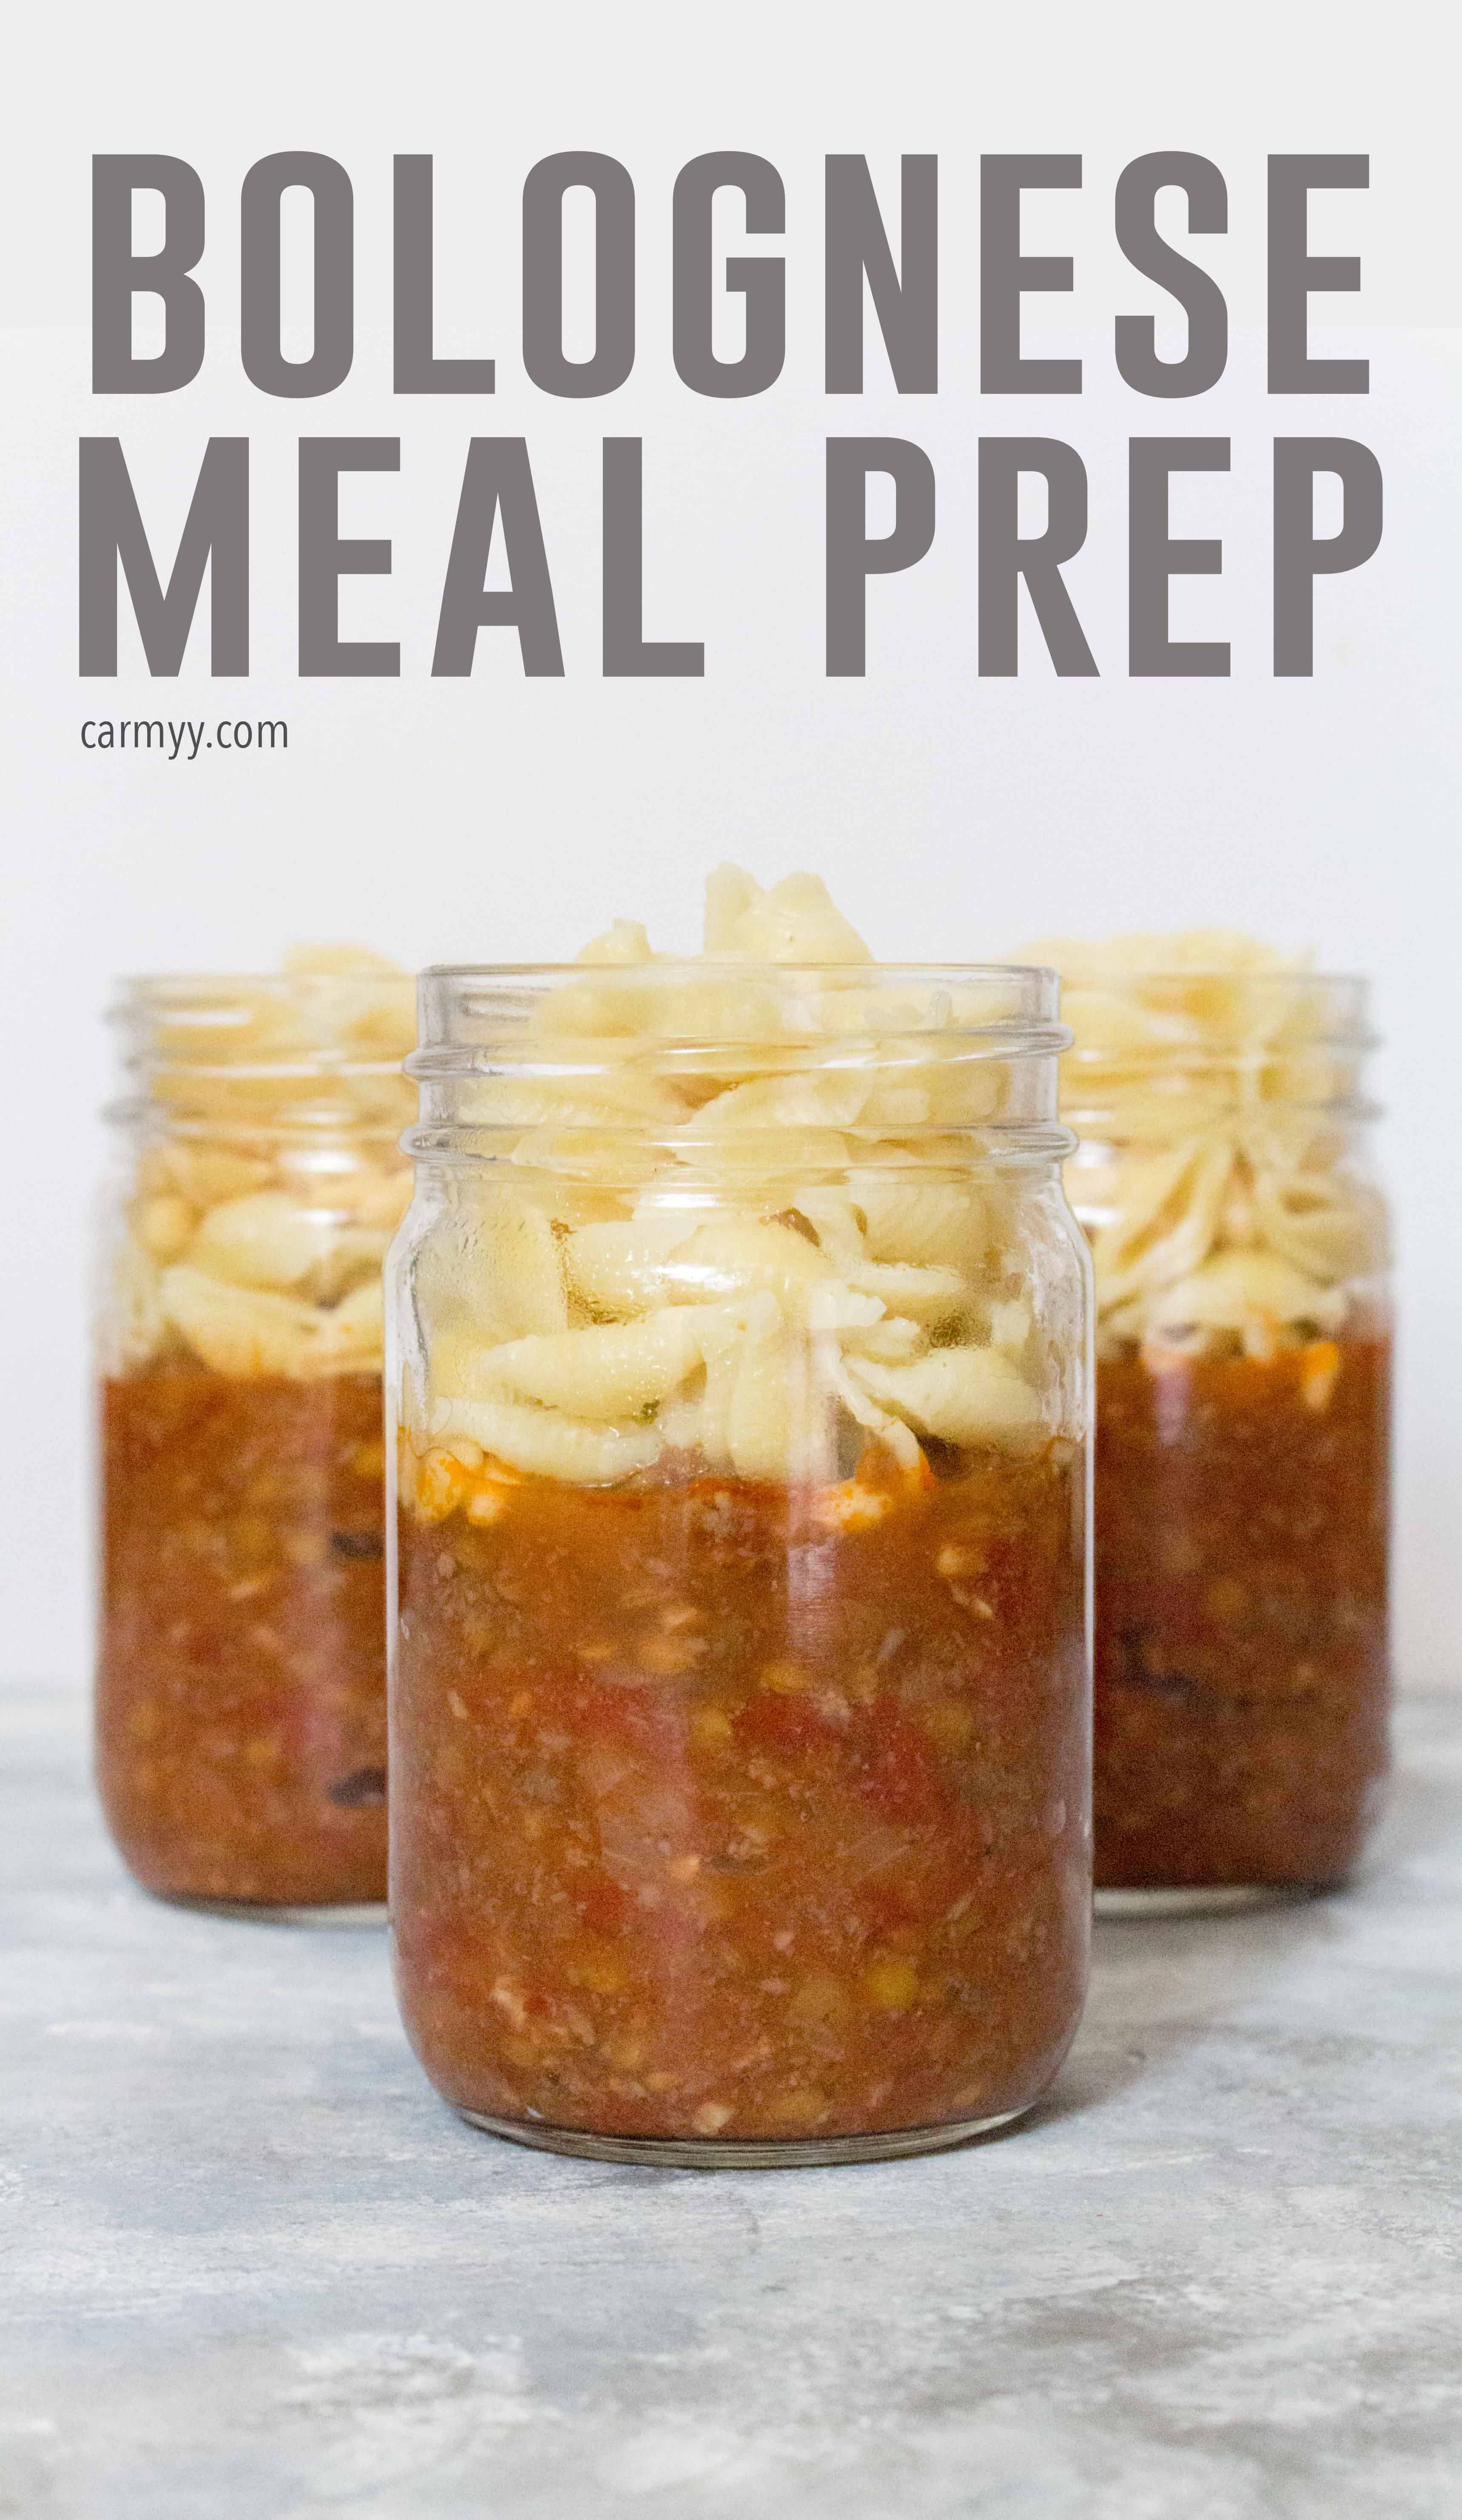 Grab a jar of this Bolognese Meal Prep on your way out the door! Packed with healthy goodness, this meal prep will hit that comfort food craving without being too heavy!